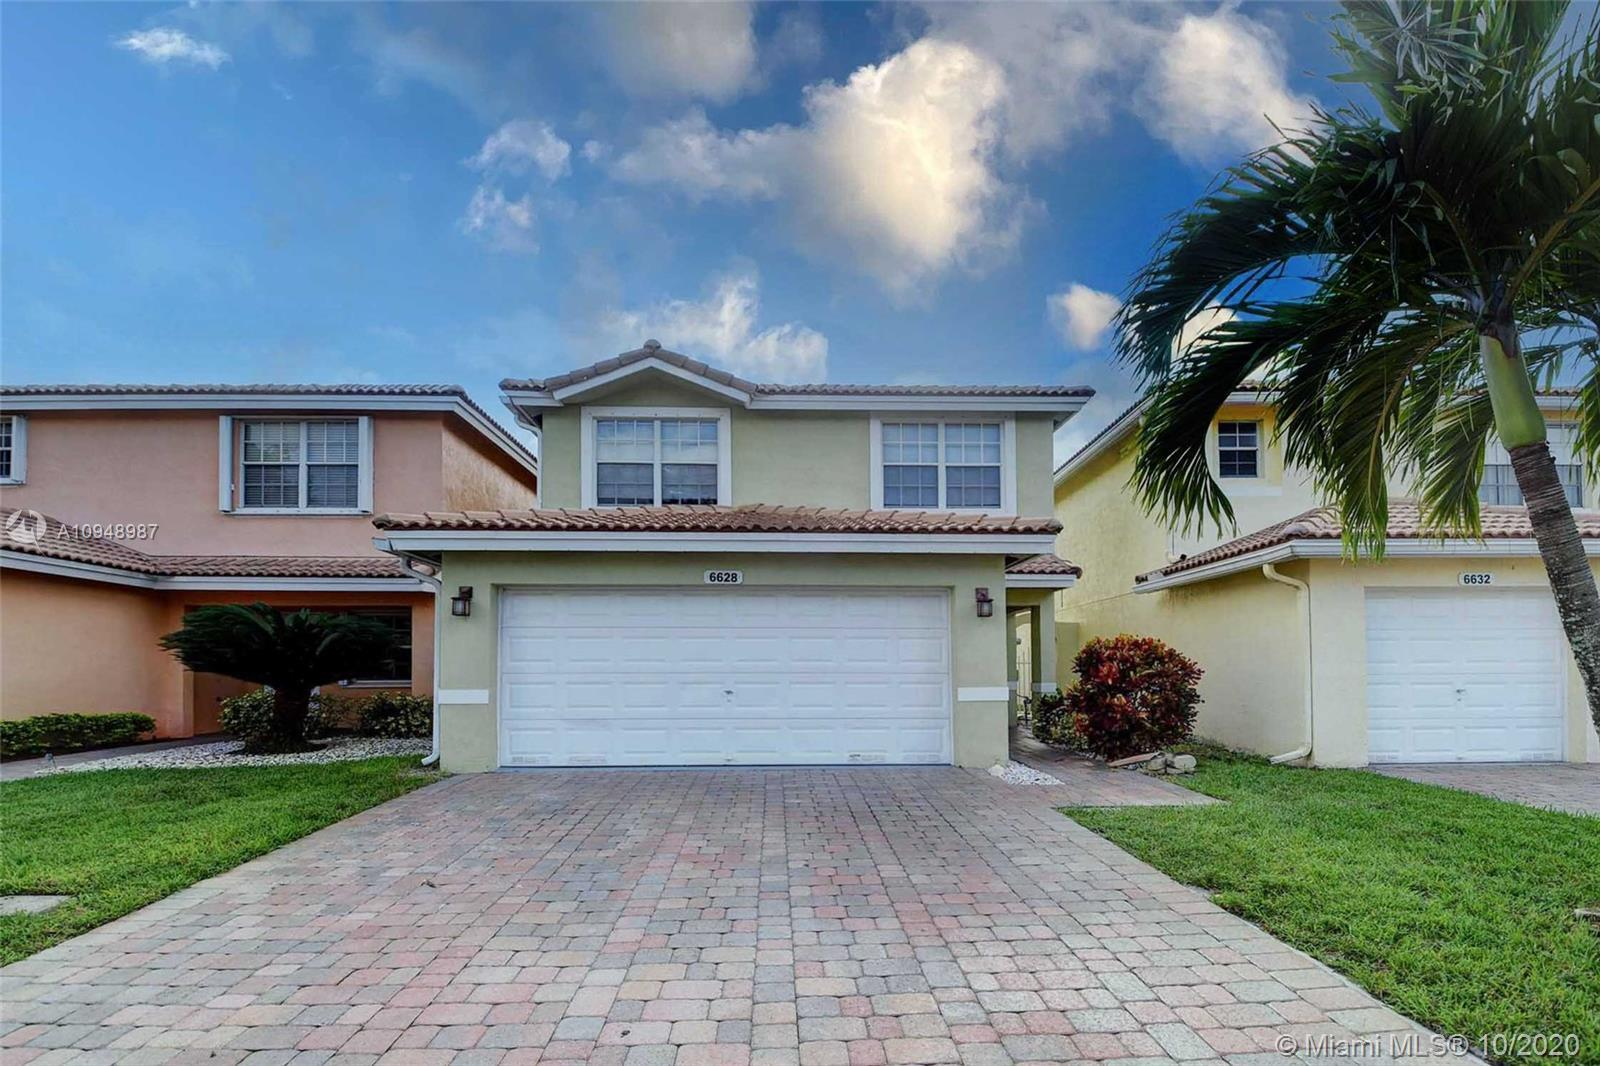 Completely upgraded 3BR/2.5 BA/2 Car Garage home in Briar Bay / Liberty Bay! Come inside and enjoy t